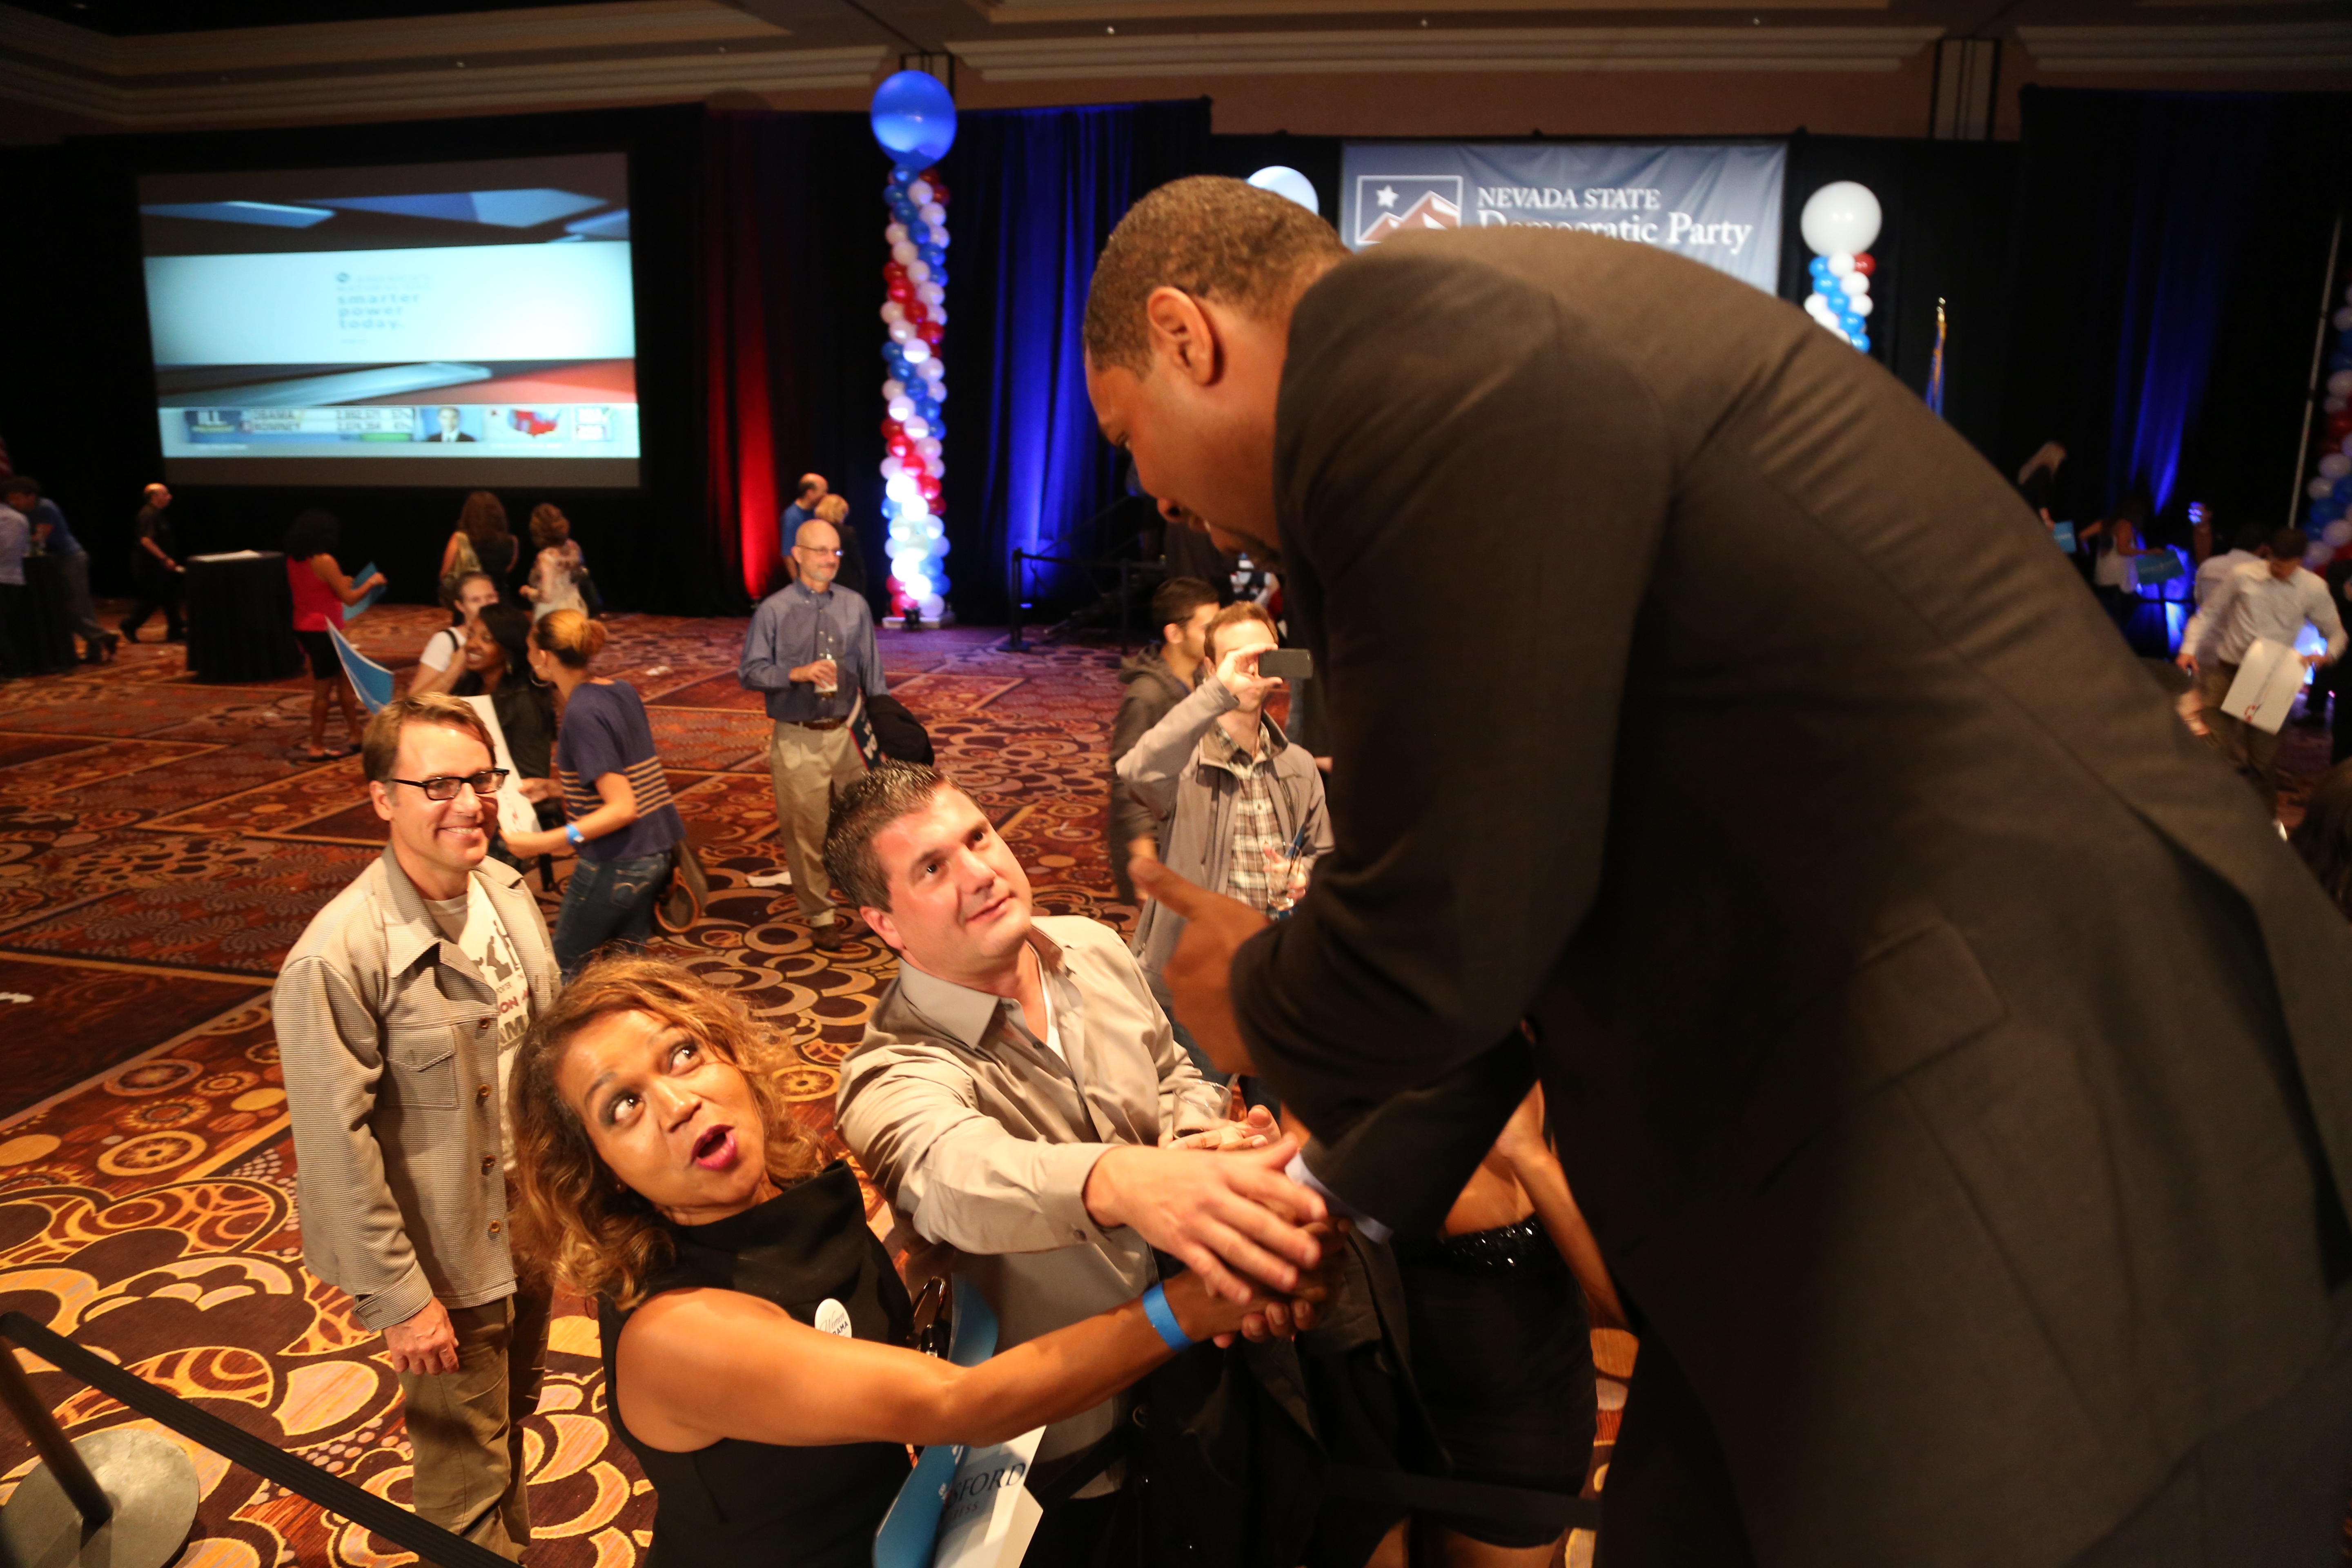 Congressman Steven Horsford, elected to represent Nevada's new 4th Congressional District in the U.S. House of Representatives, greets supporters at the Mandalay Bay in Las Vegas at the Election Day celebration.